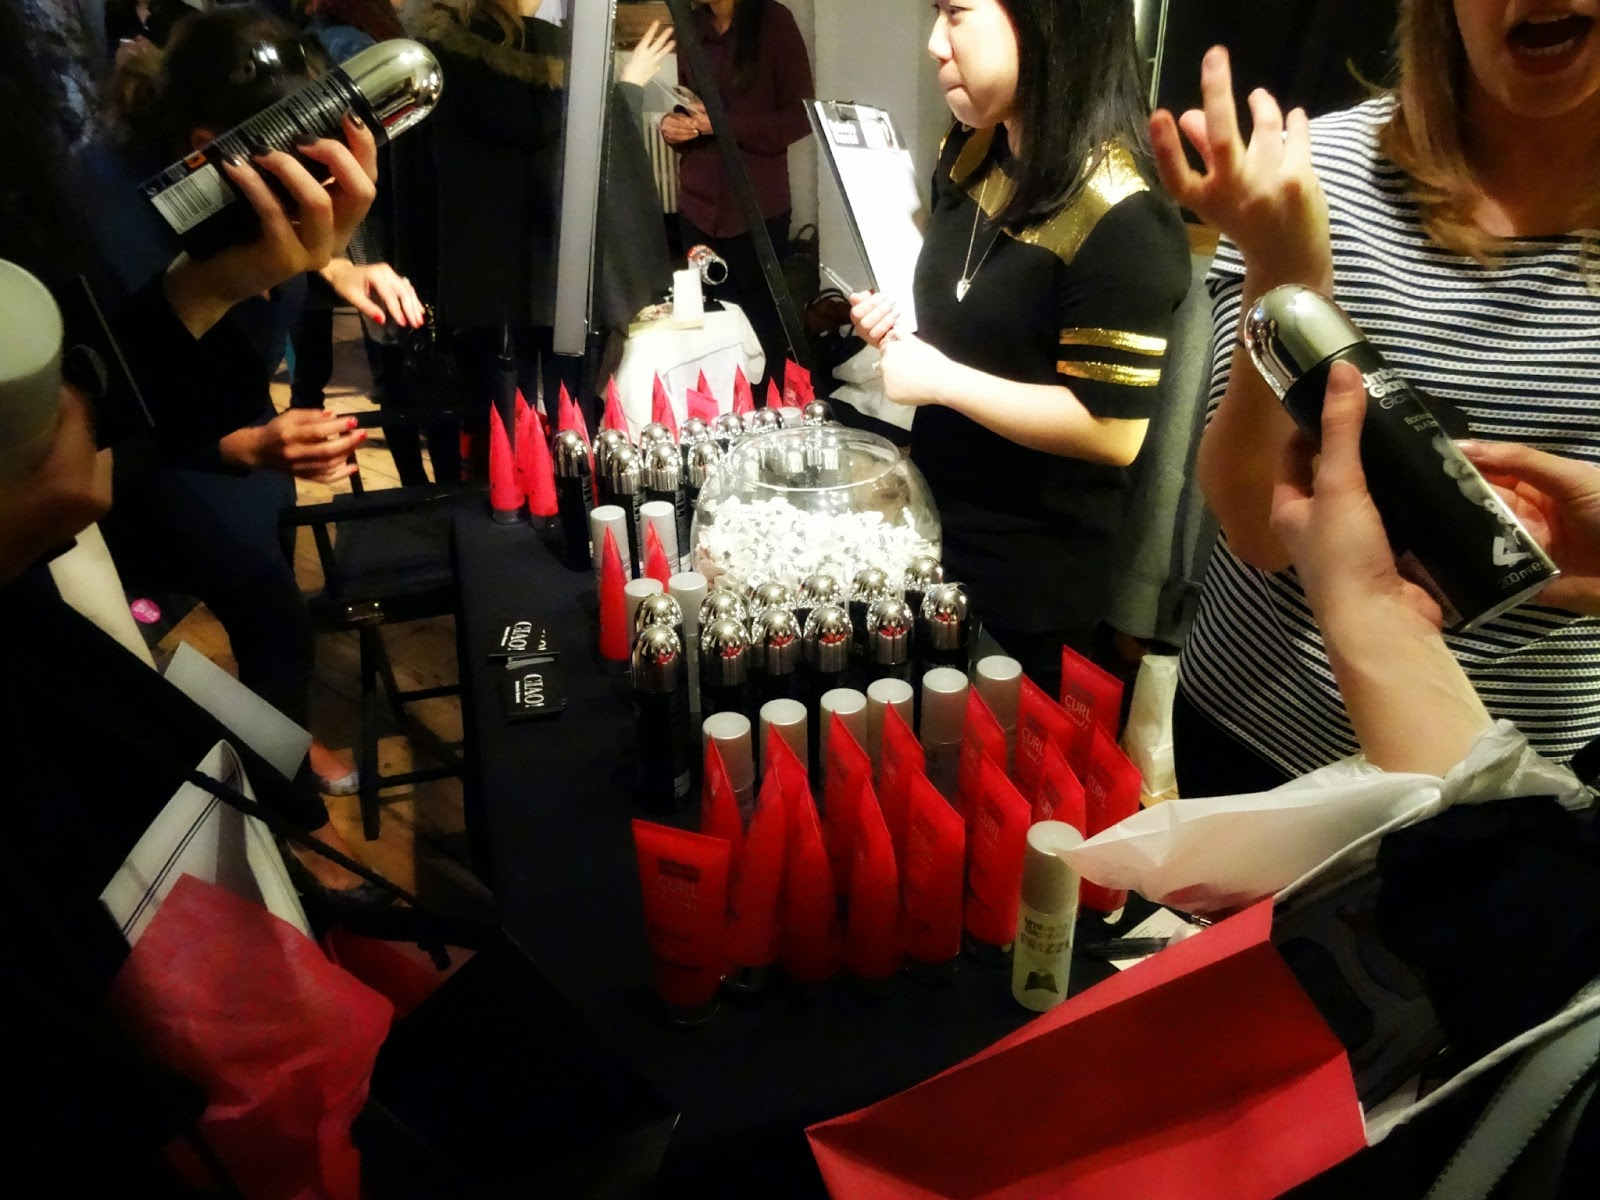 Giano Umberto Hair care at blogging event